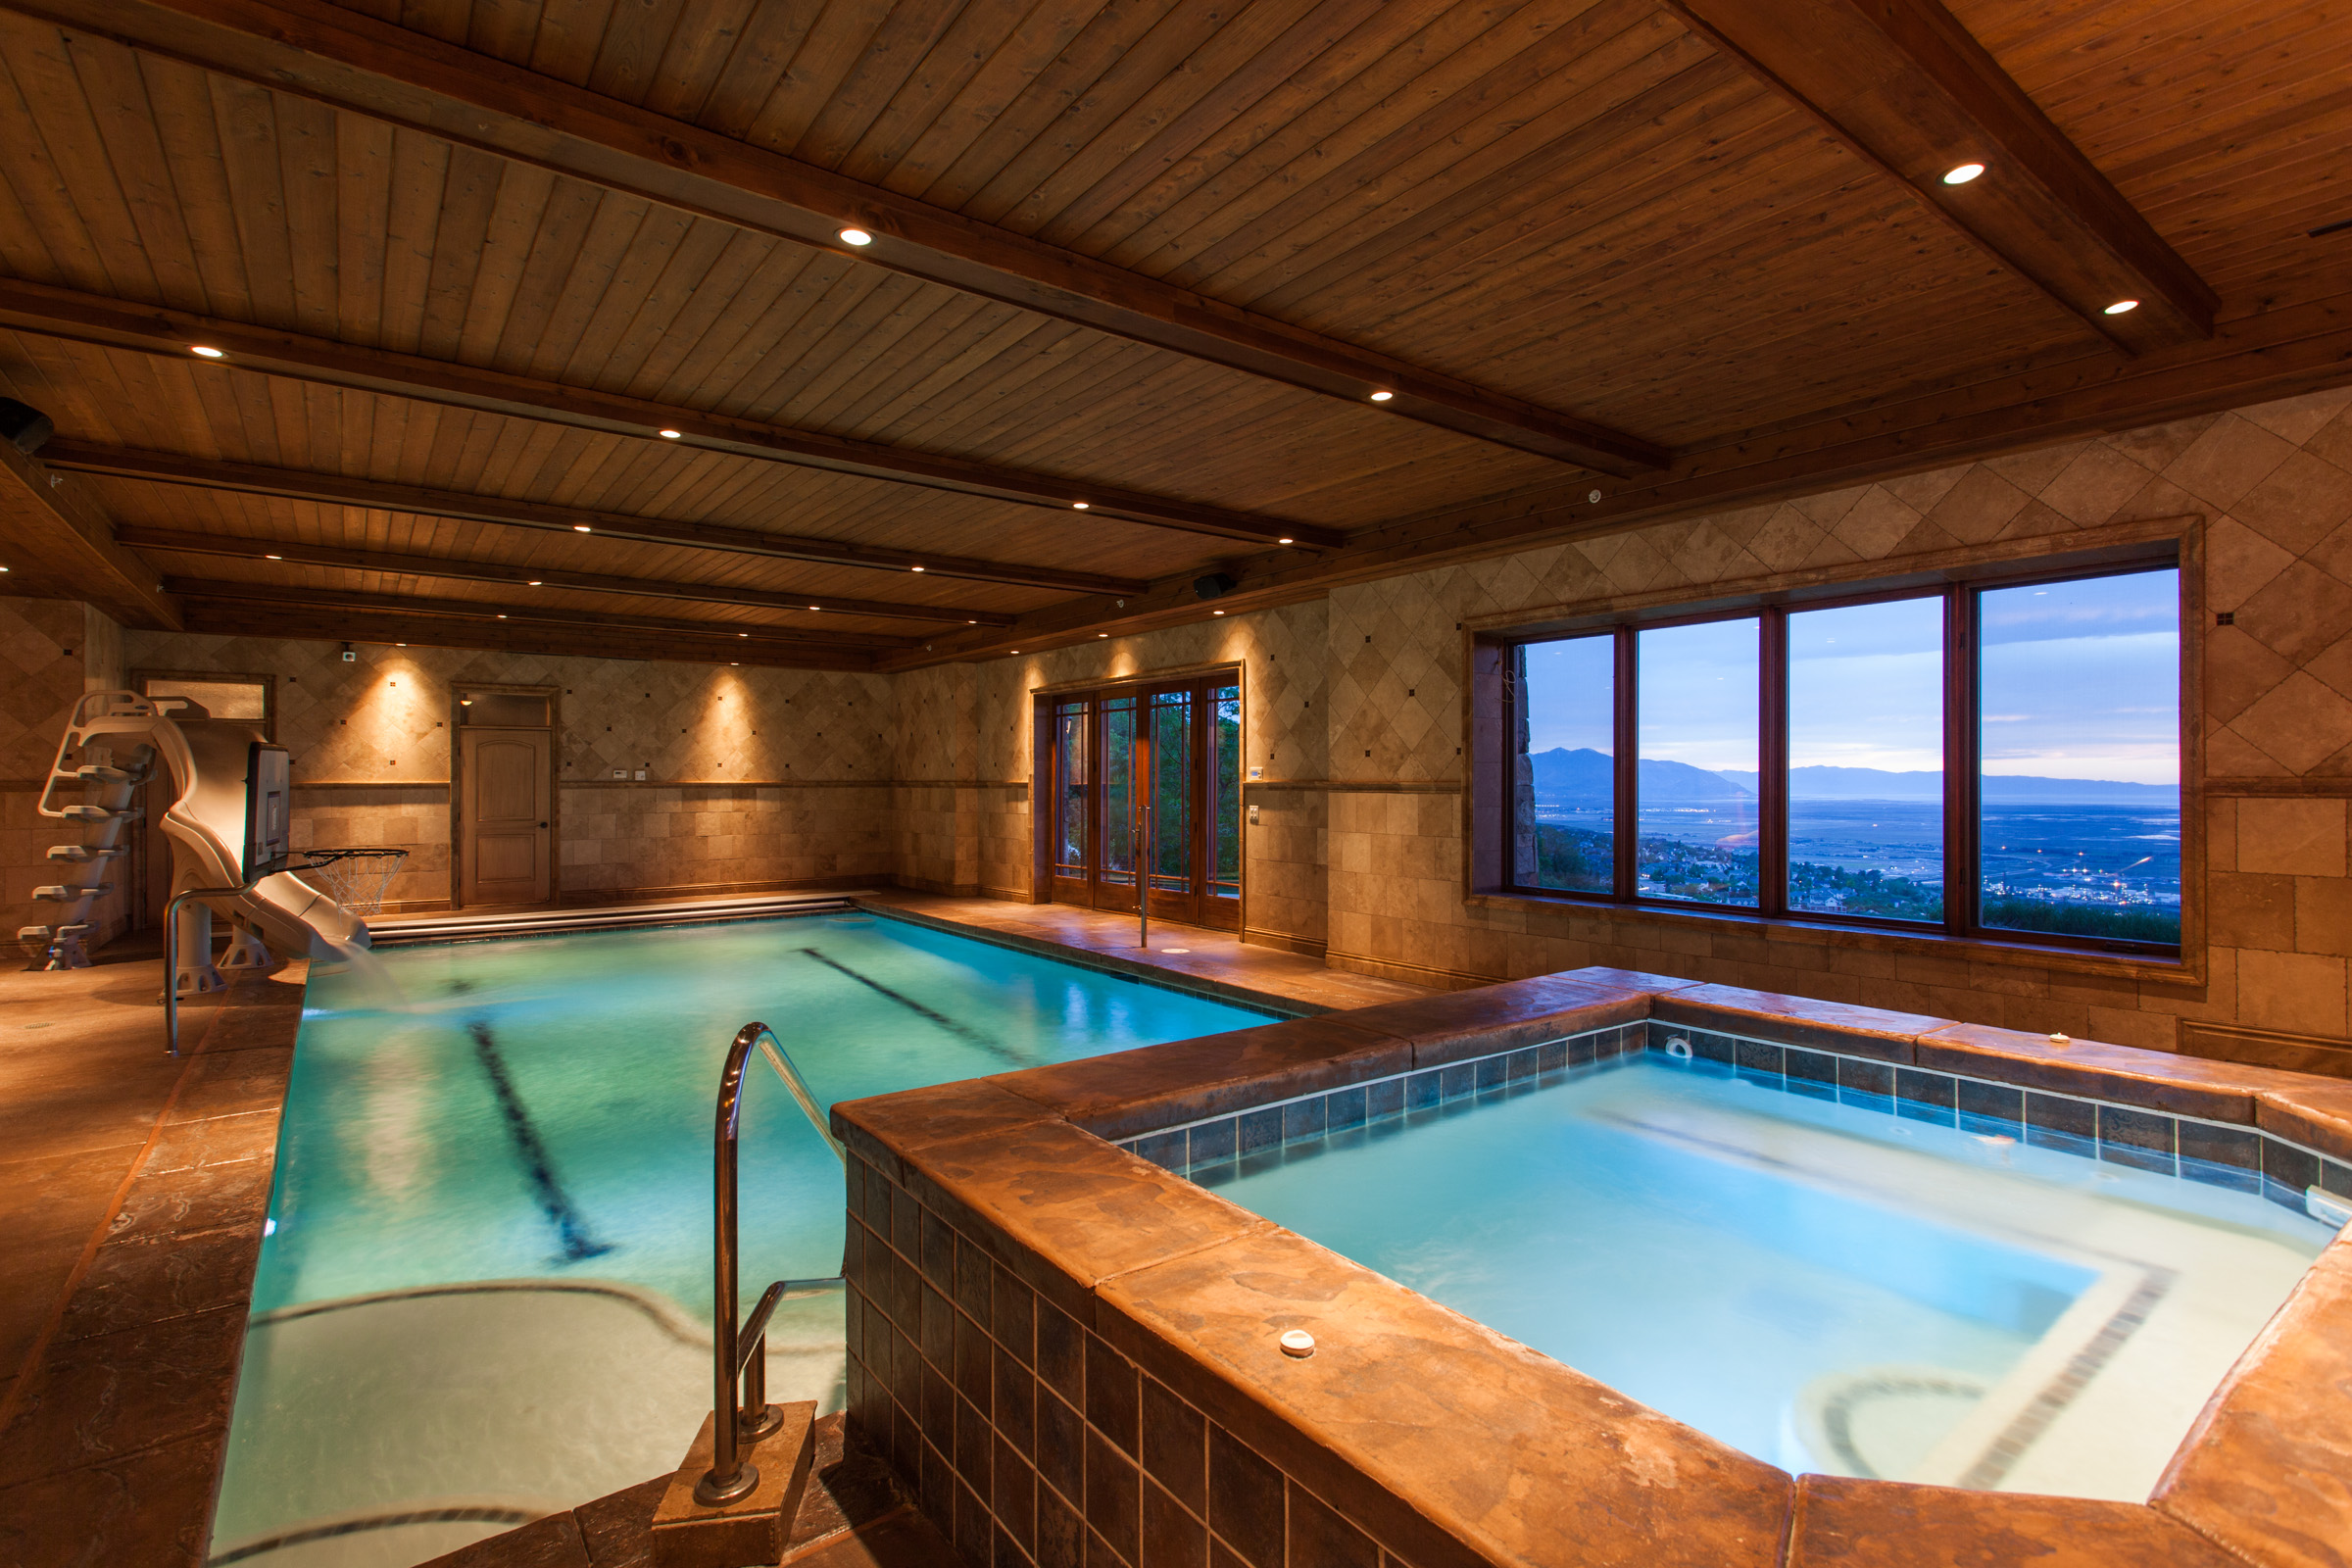 The Ultimate Luxury Amenity Lavish Indoor Pools